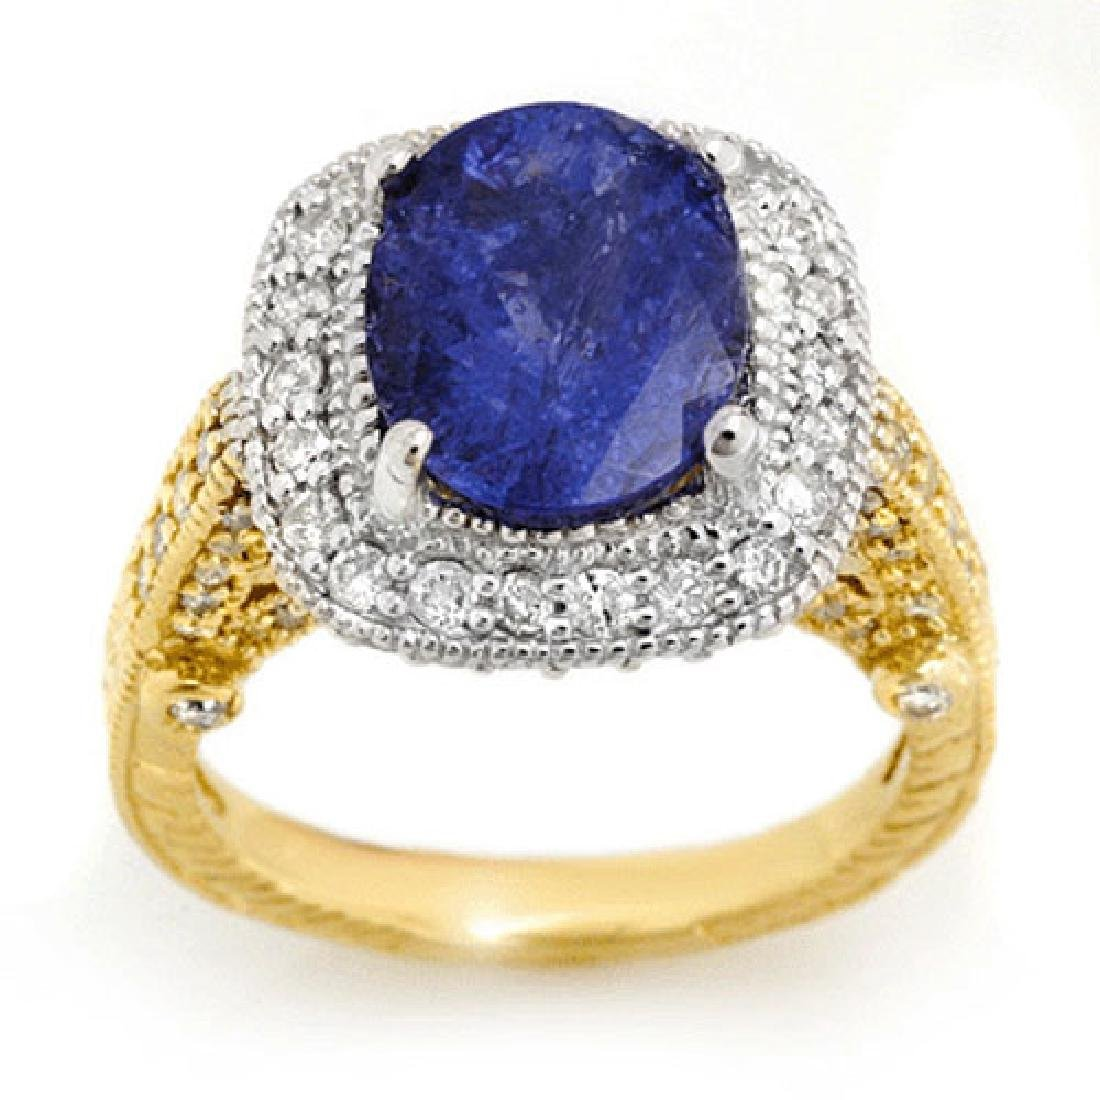 5.40 ctw Tanzanite & Diamond Ring 14K 2-Tone Gold -